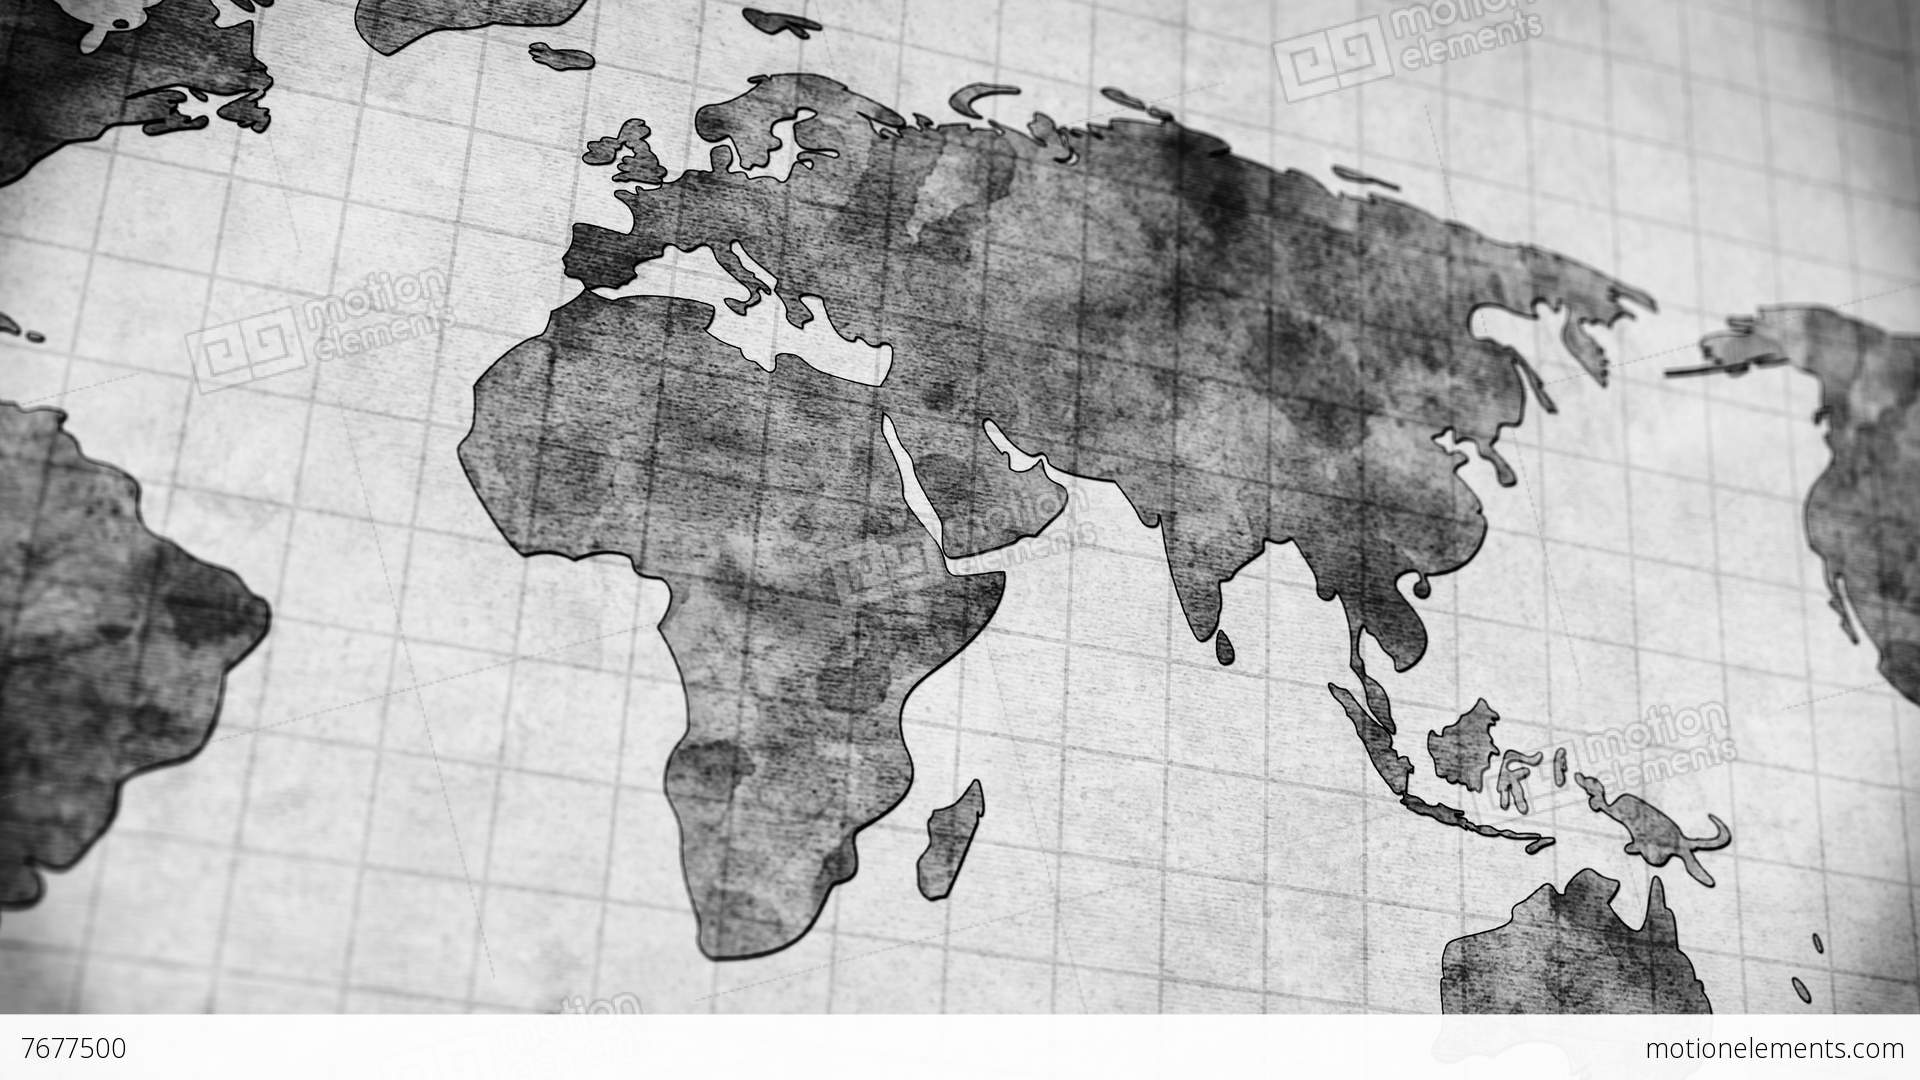 Vintage world map loopable panning animation 4k 4096x2304 vintage world map loopable panning animation 4k 4096x2304 videos de stock gumiabroncs Choice Image